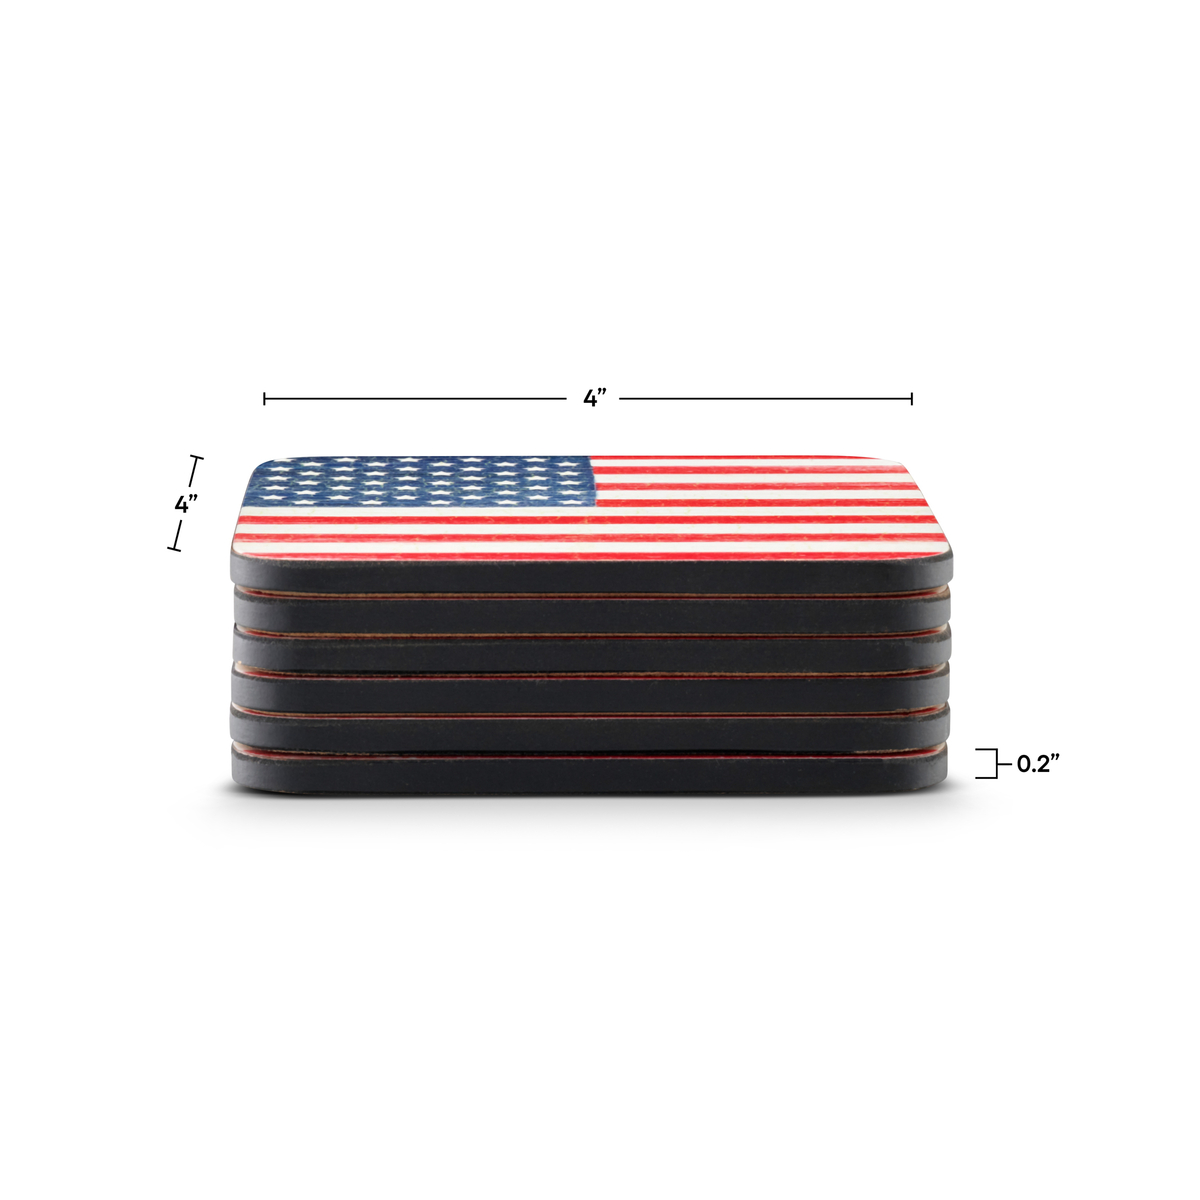 Pimpernel American Flag Coasters Set of 6 image number 2